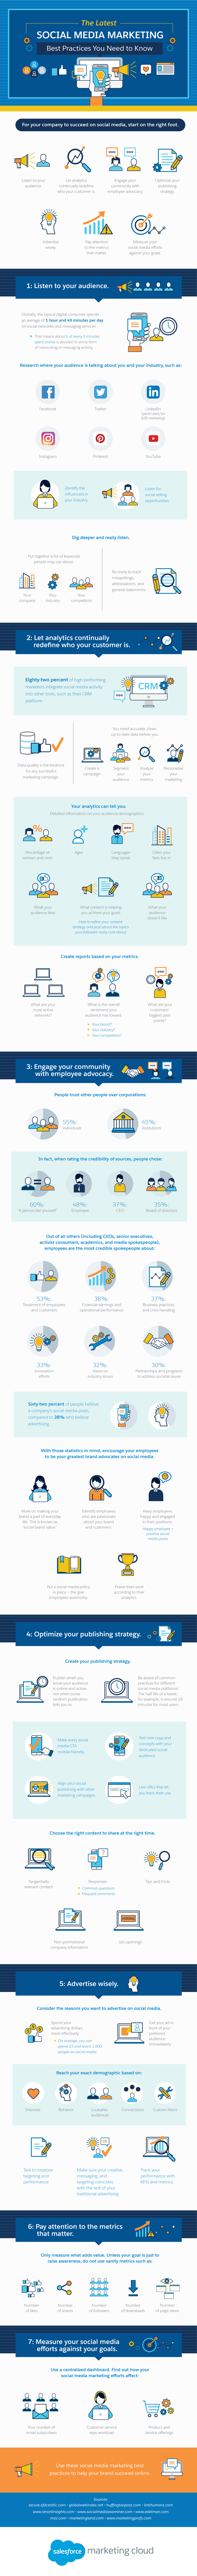 Source Graphic: https://www.salesforce.com/products/marketing-cloud/resources/social-media-marketing-best-practices/